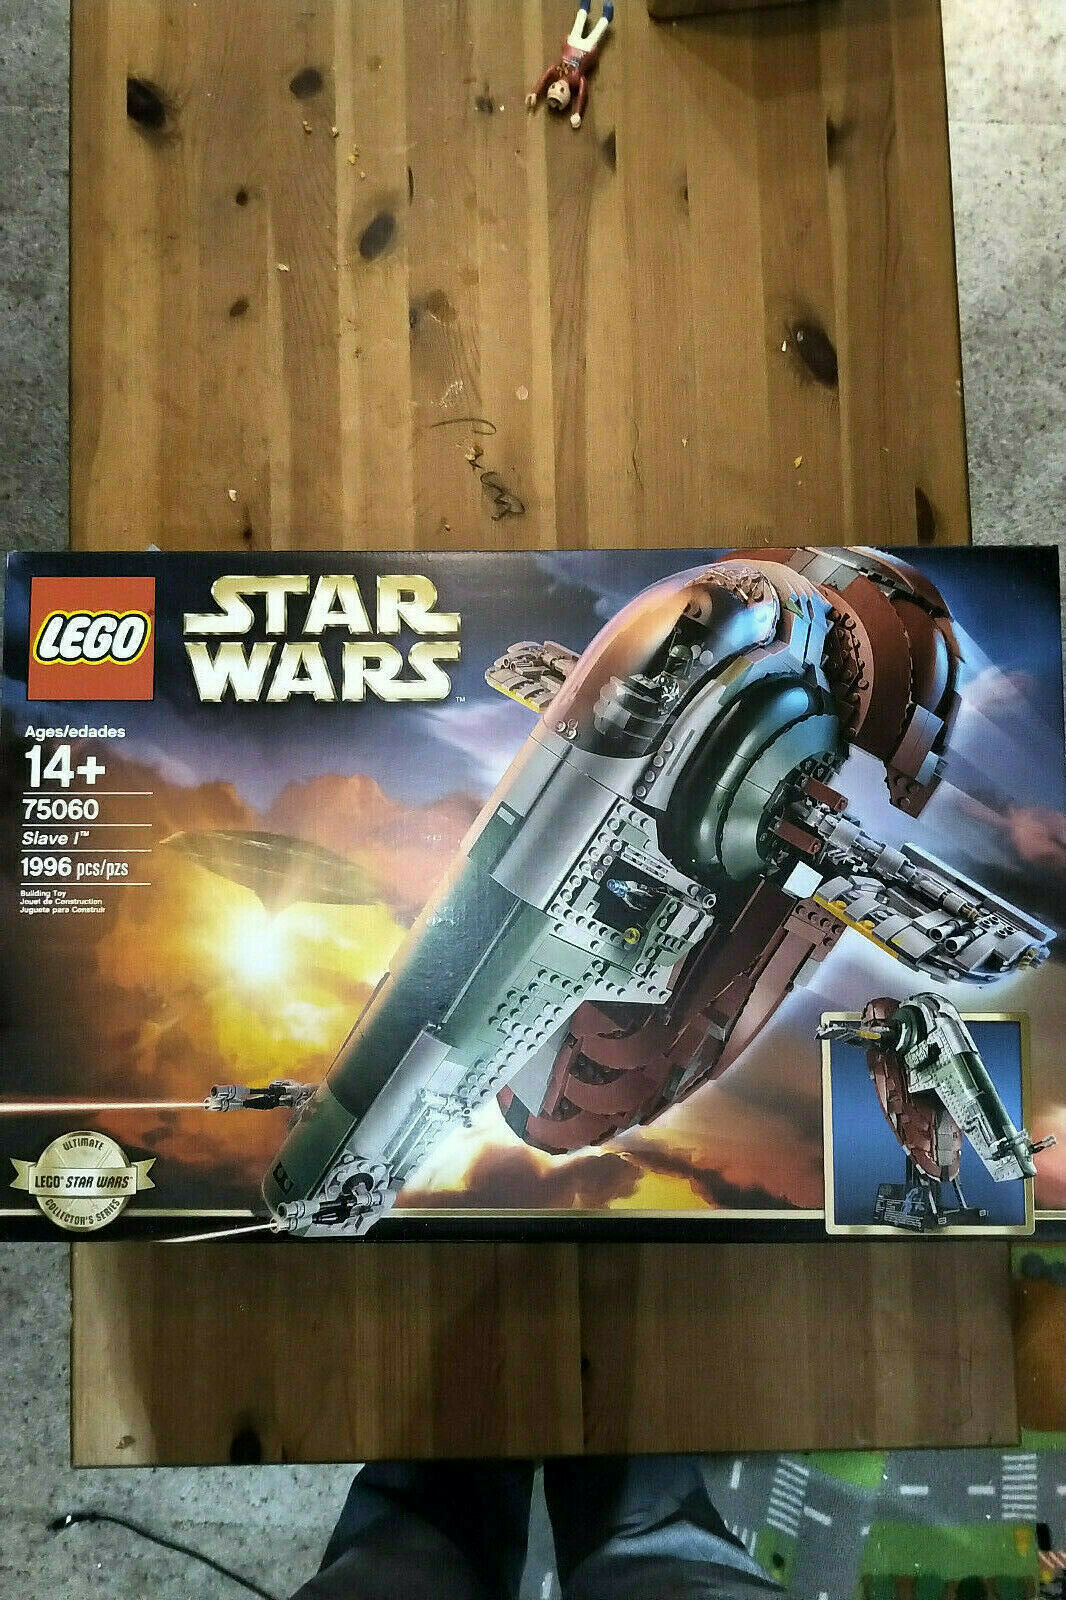 LEGO Star Wars Slave 1 75060 UCS NISB. Box and seals in mint Condition